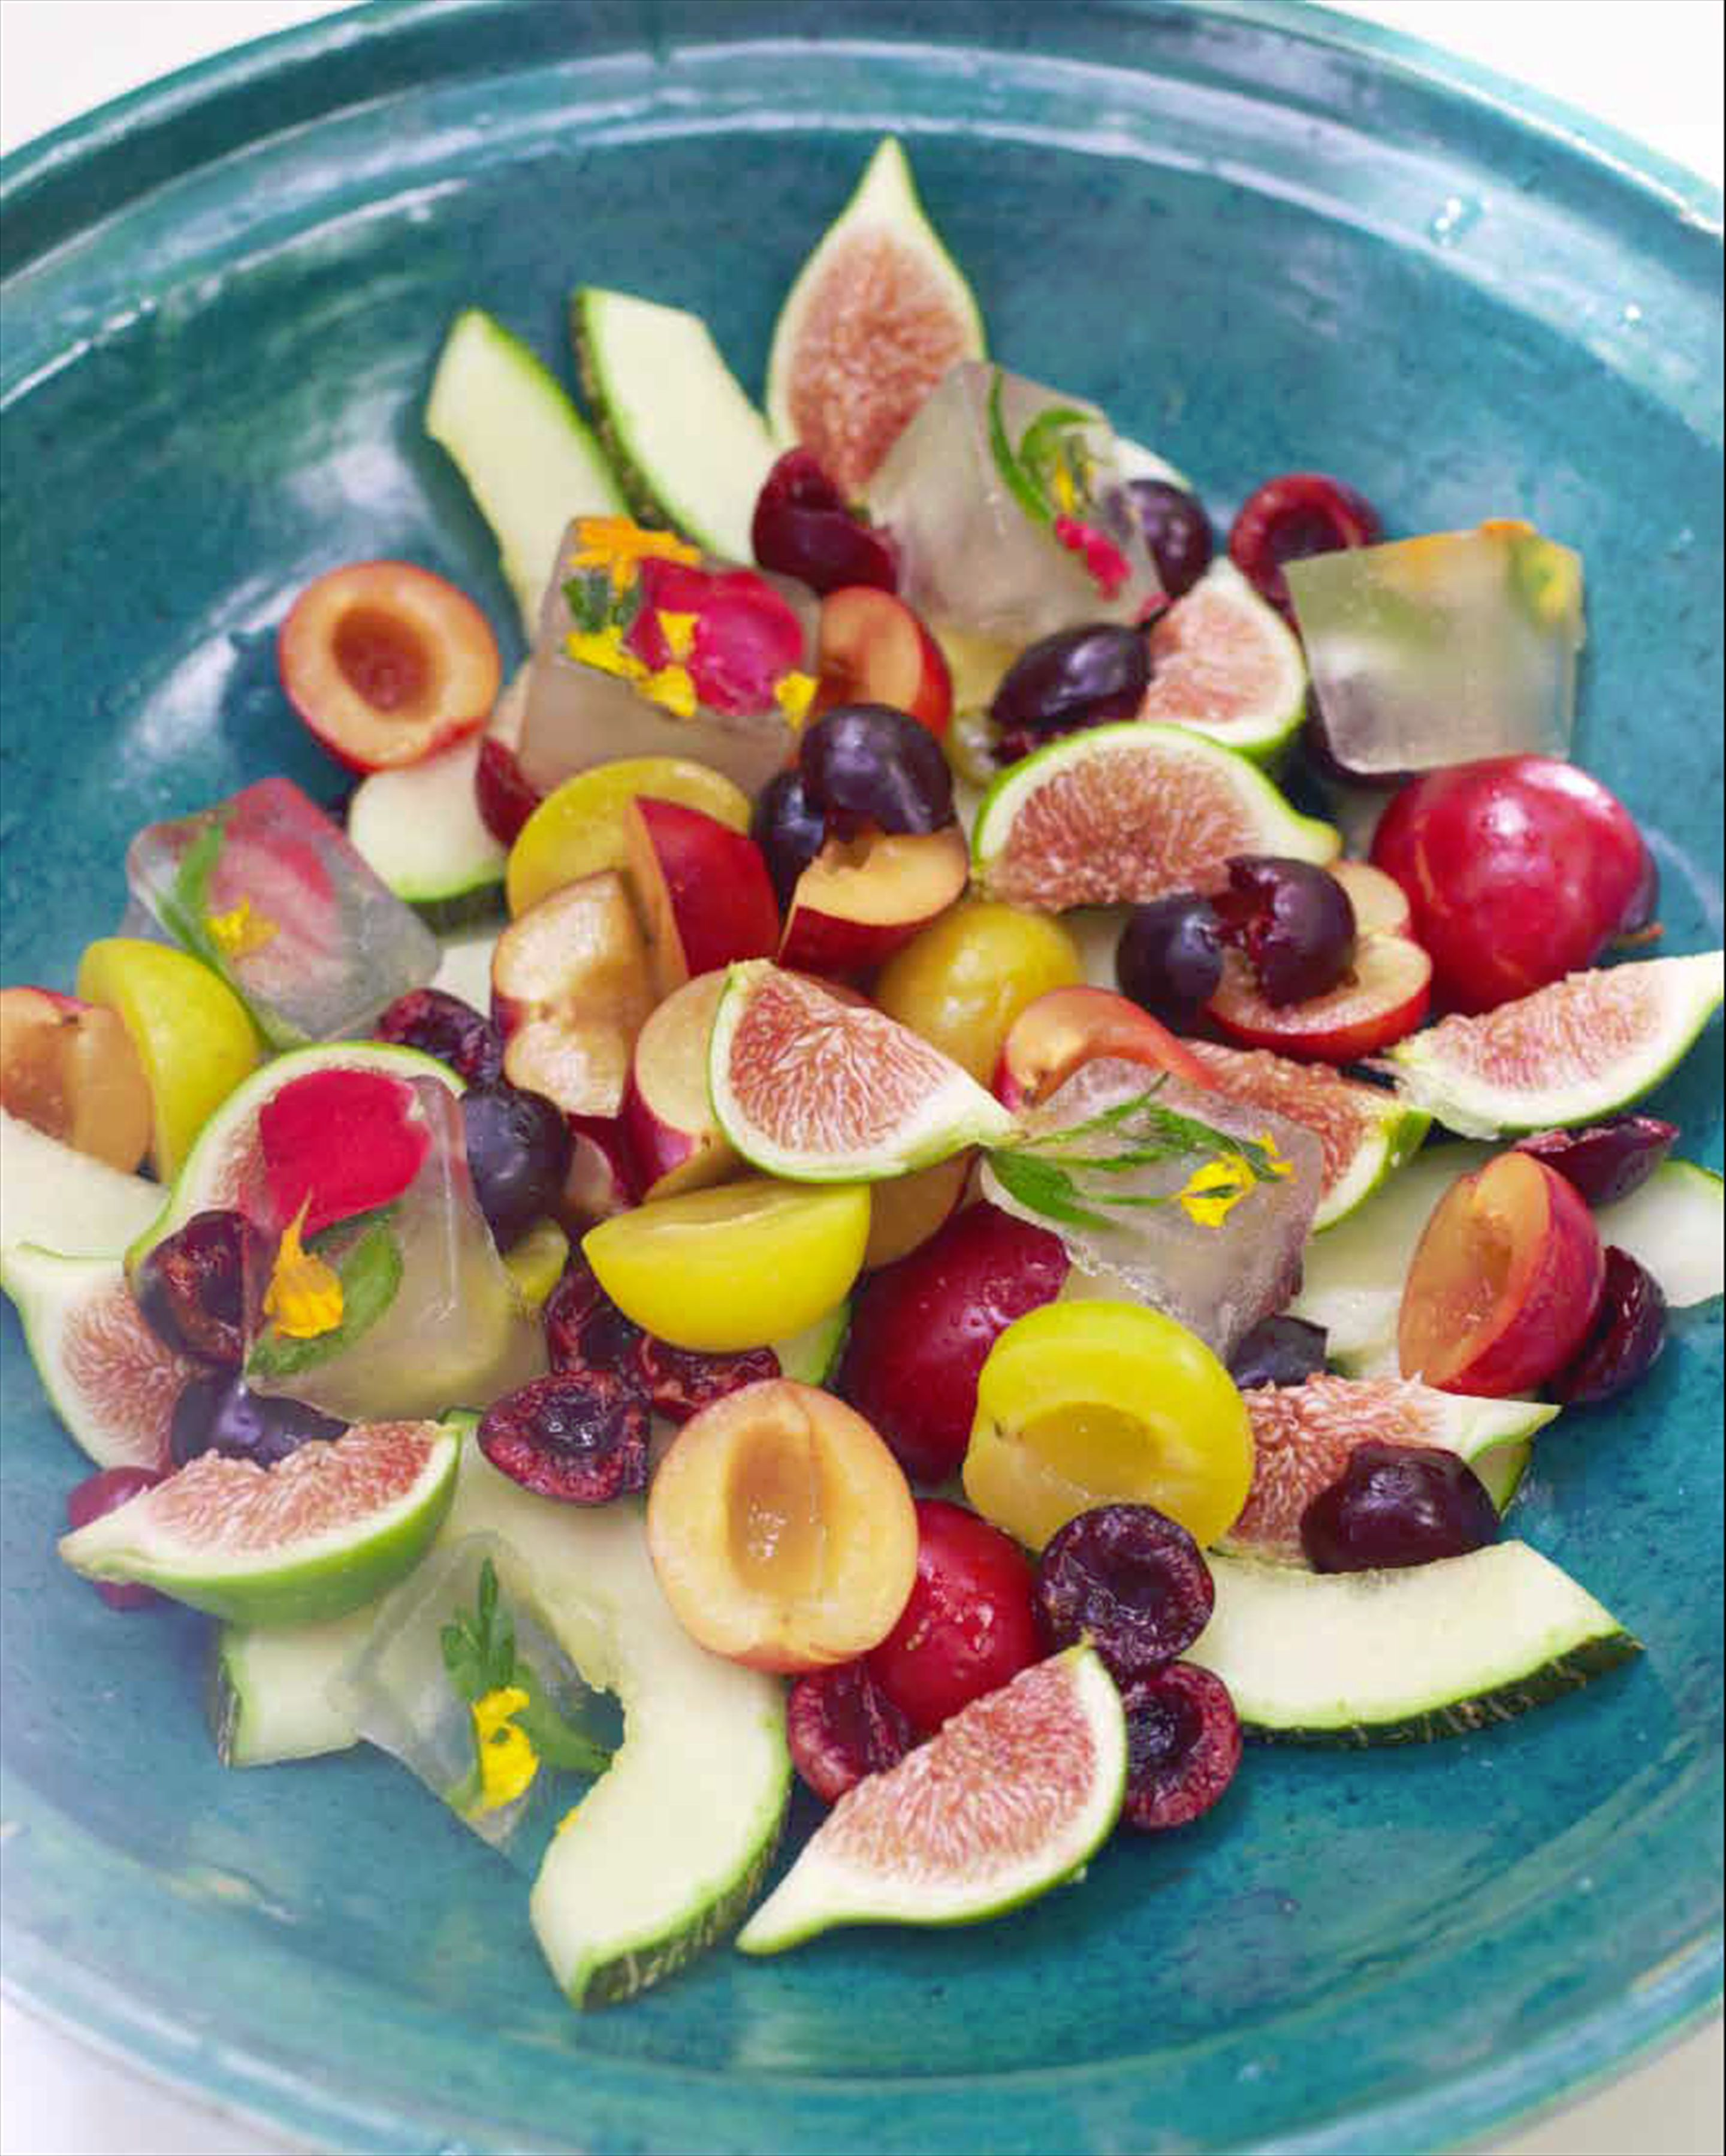 Moroccan fruit salad with lemon verbena iced syrup